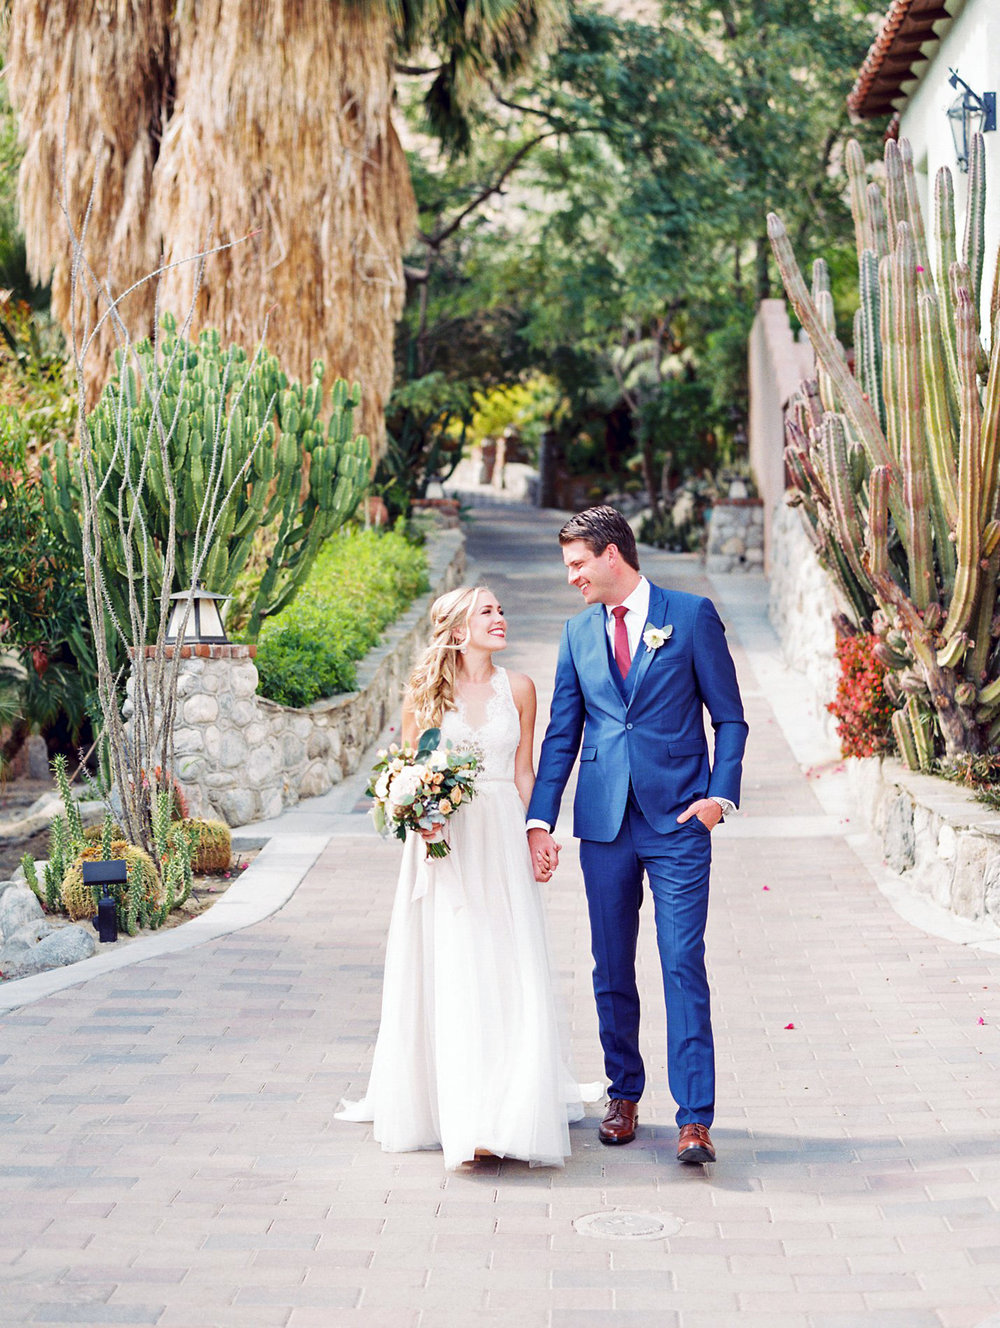 PalmSpringsWeddingPhotographer_RachelSolomonPhotography_Colony29Wedding-1.jpg